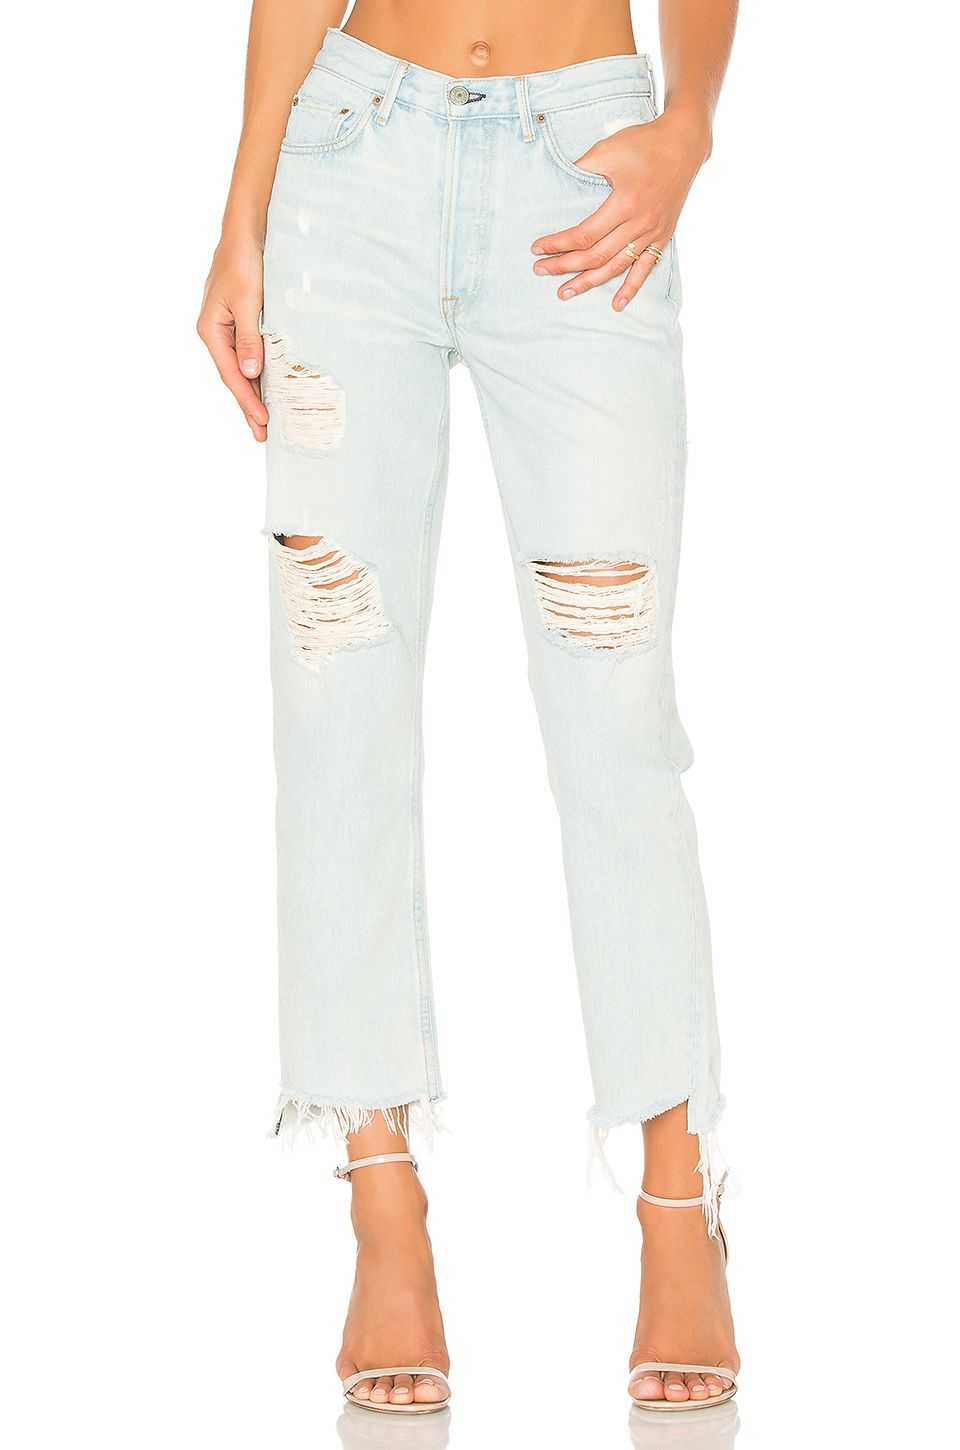 9699e542b7 REVOLVE | Want Want Want Now | High waisted distressed jeans, White ...